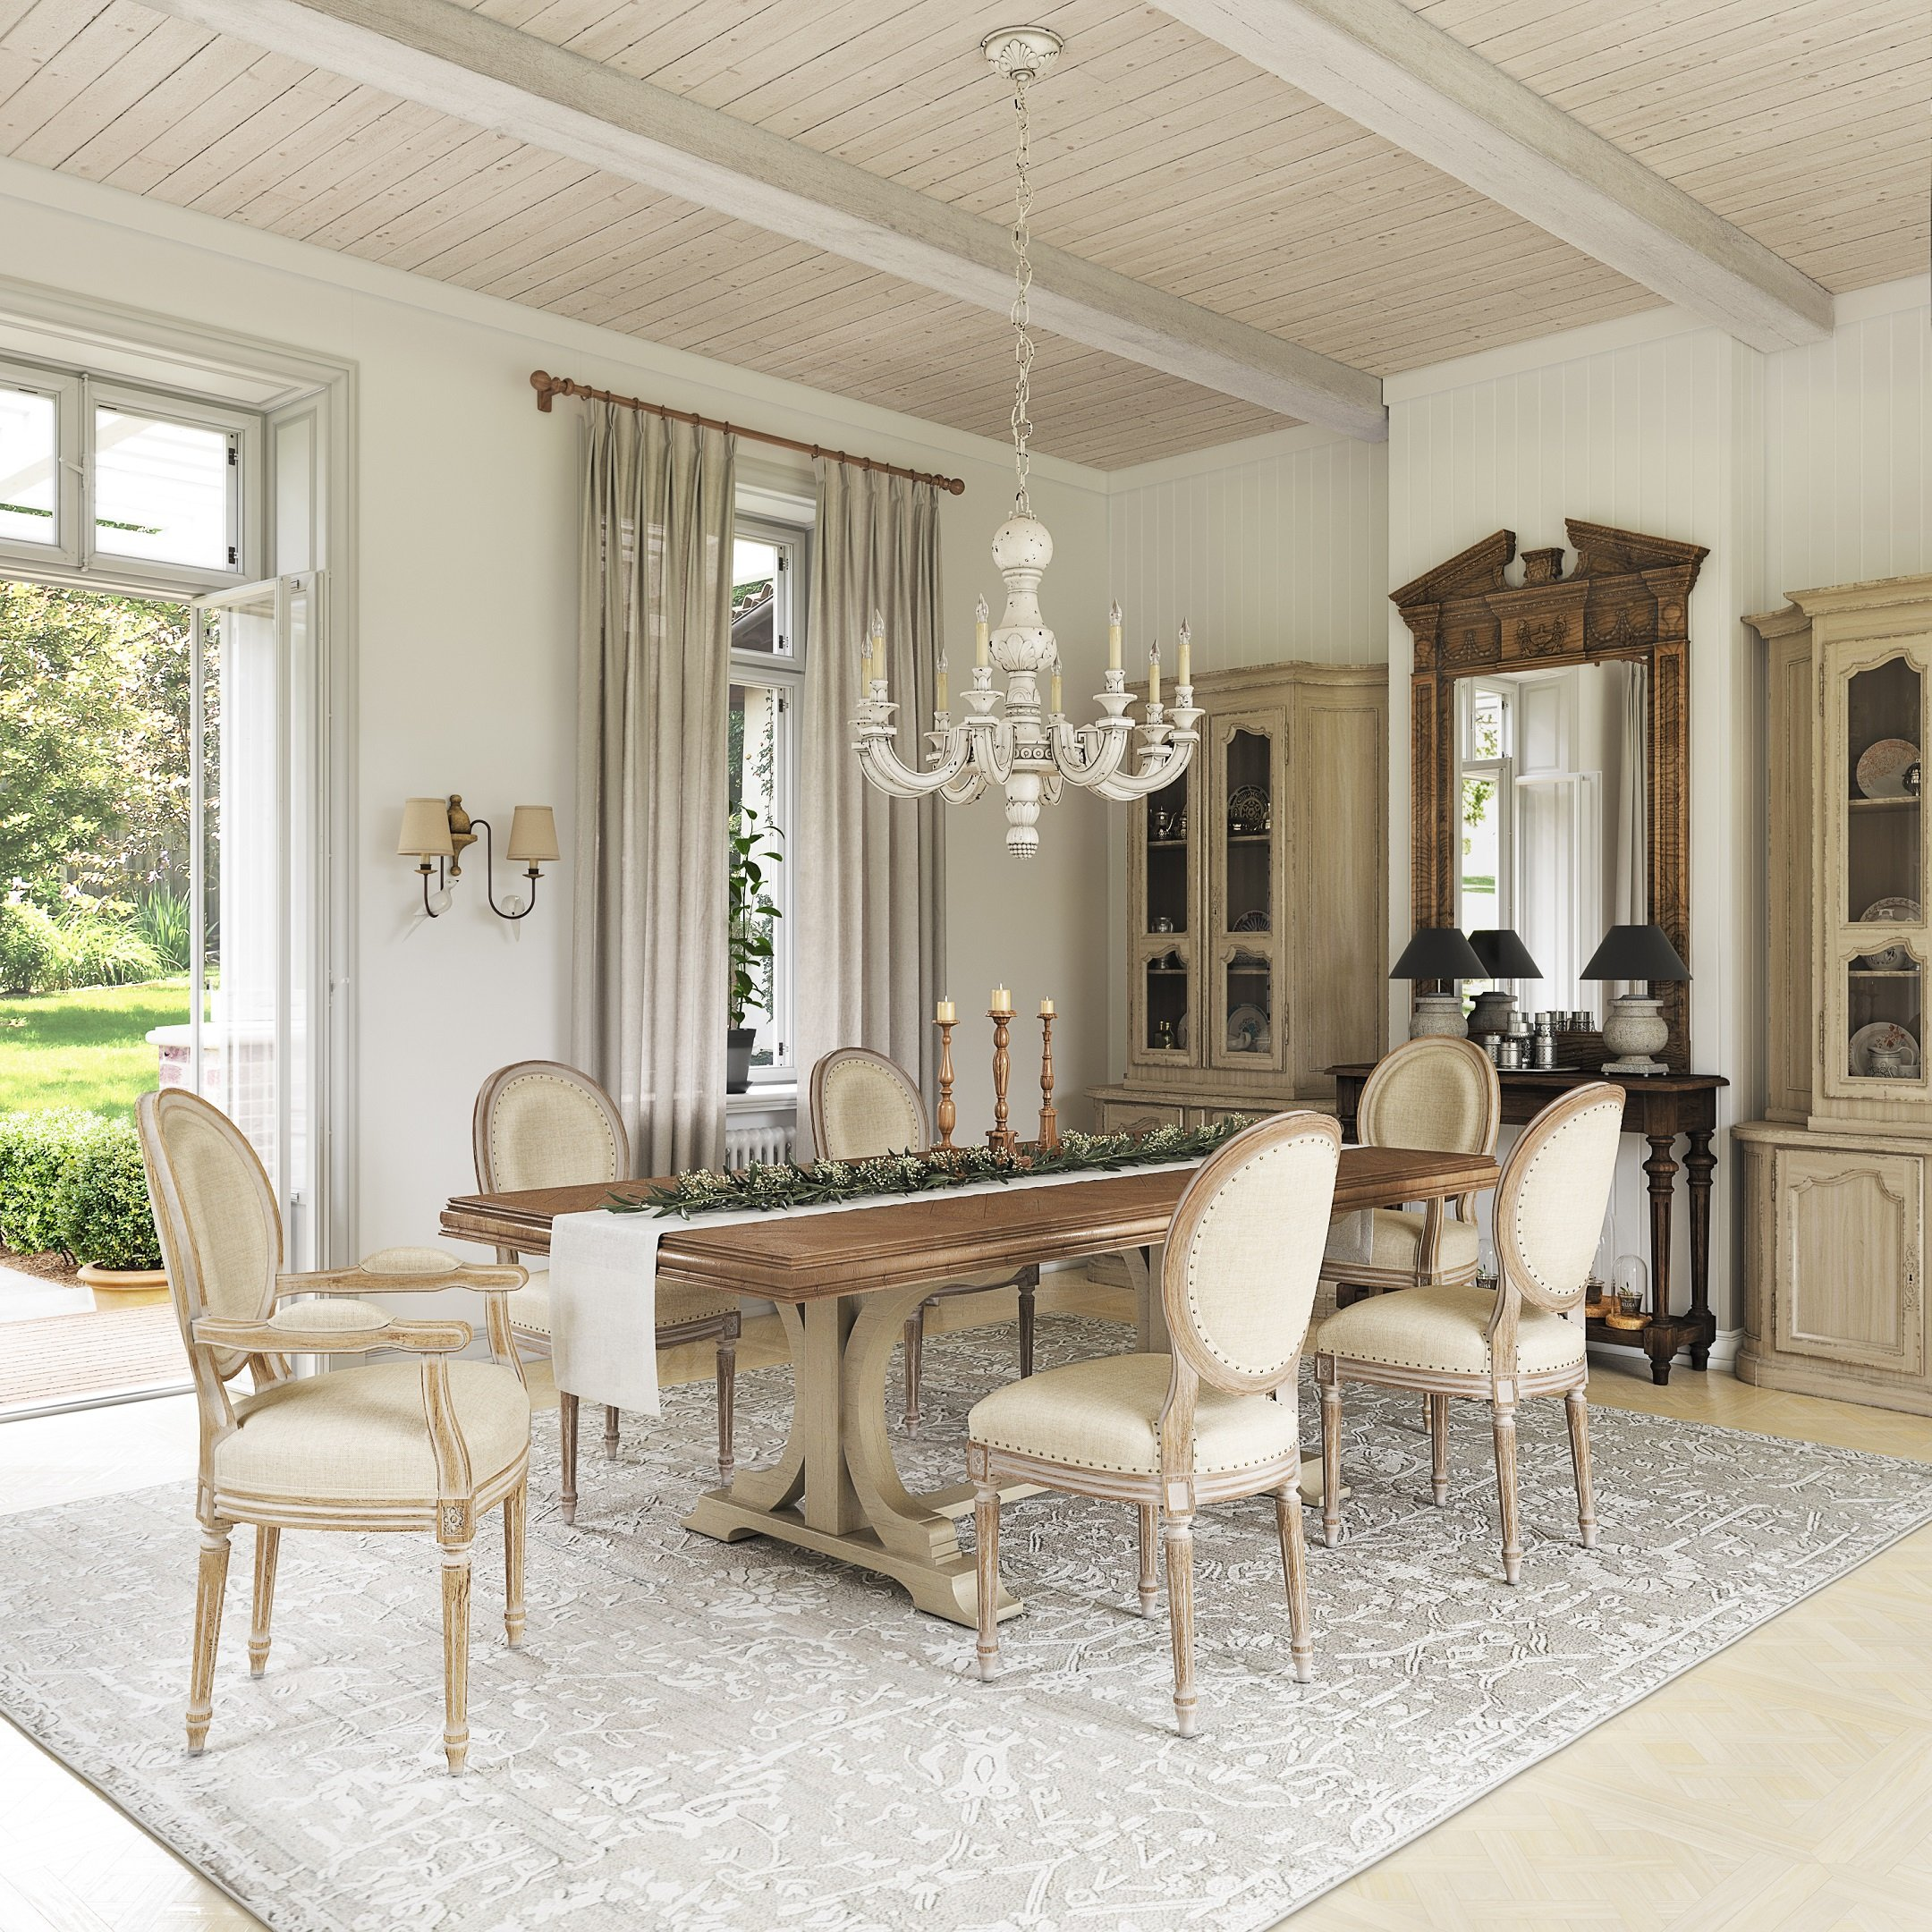 3D Visualization of a French Country-Style Dining Room